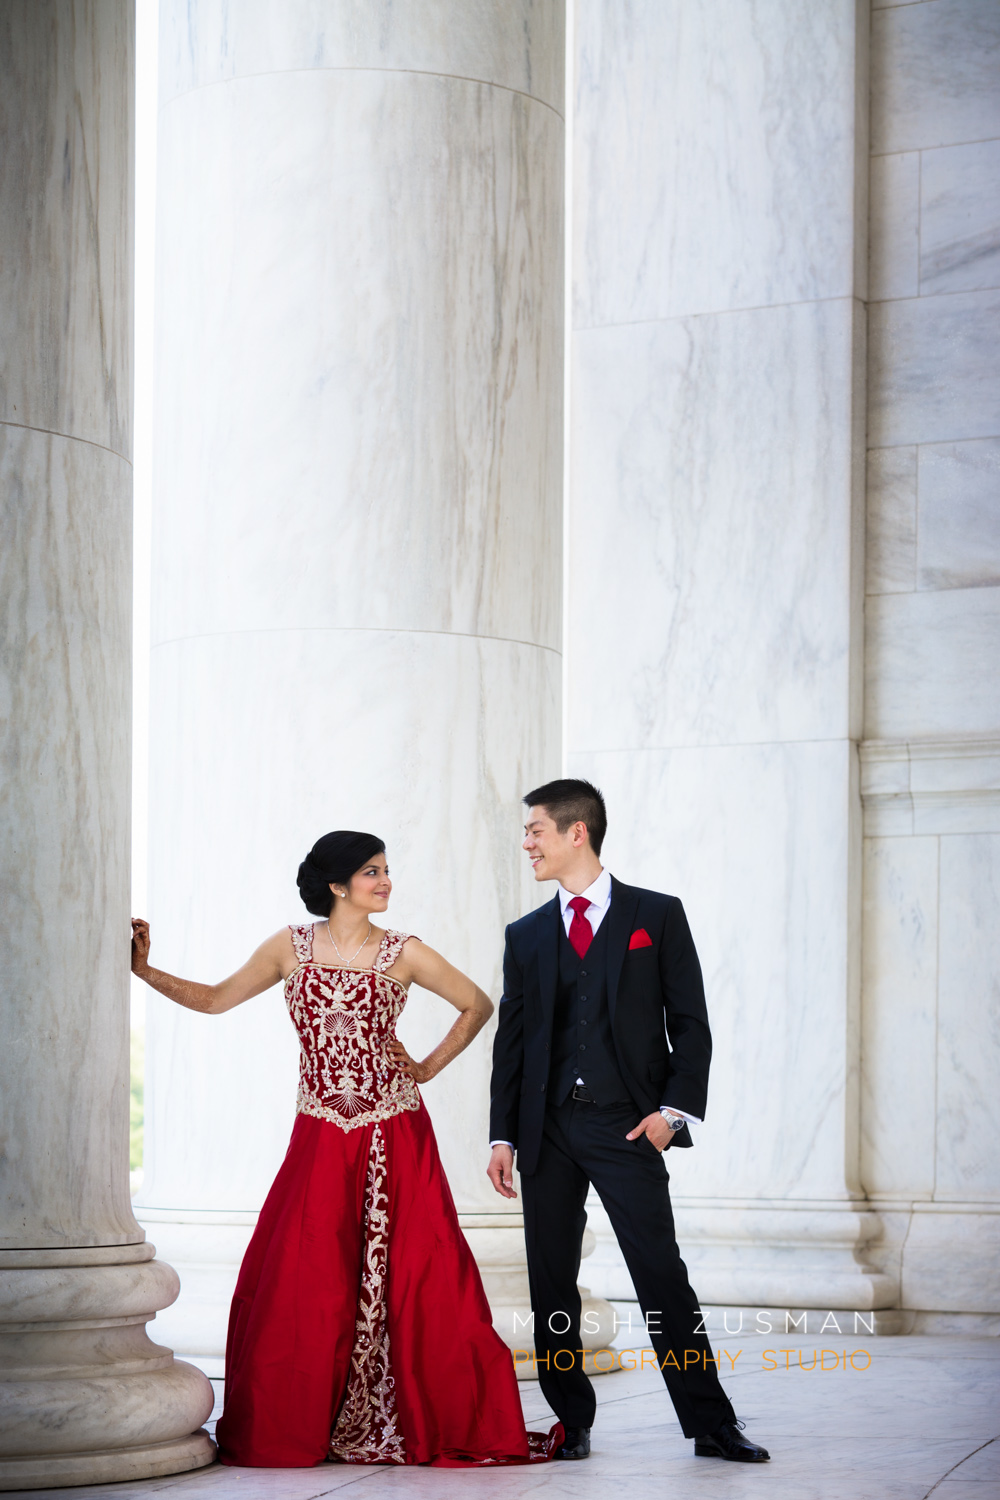 Indian_Wedding_Photography_Moshe_Zusman_Mandarin_Oriental_DC_Naina_Chris-19.jpg